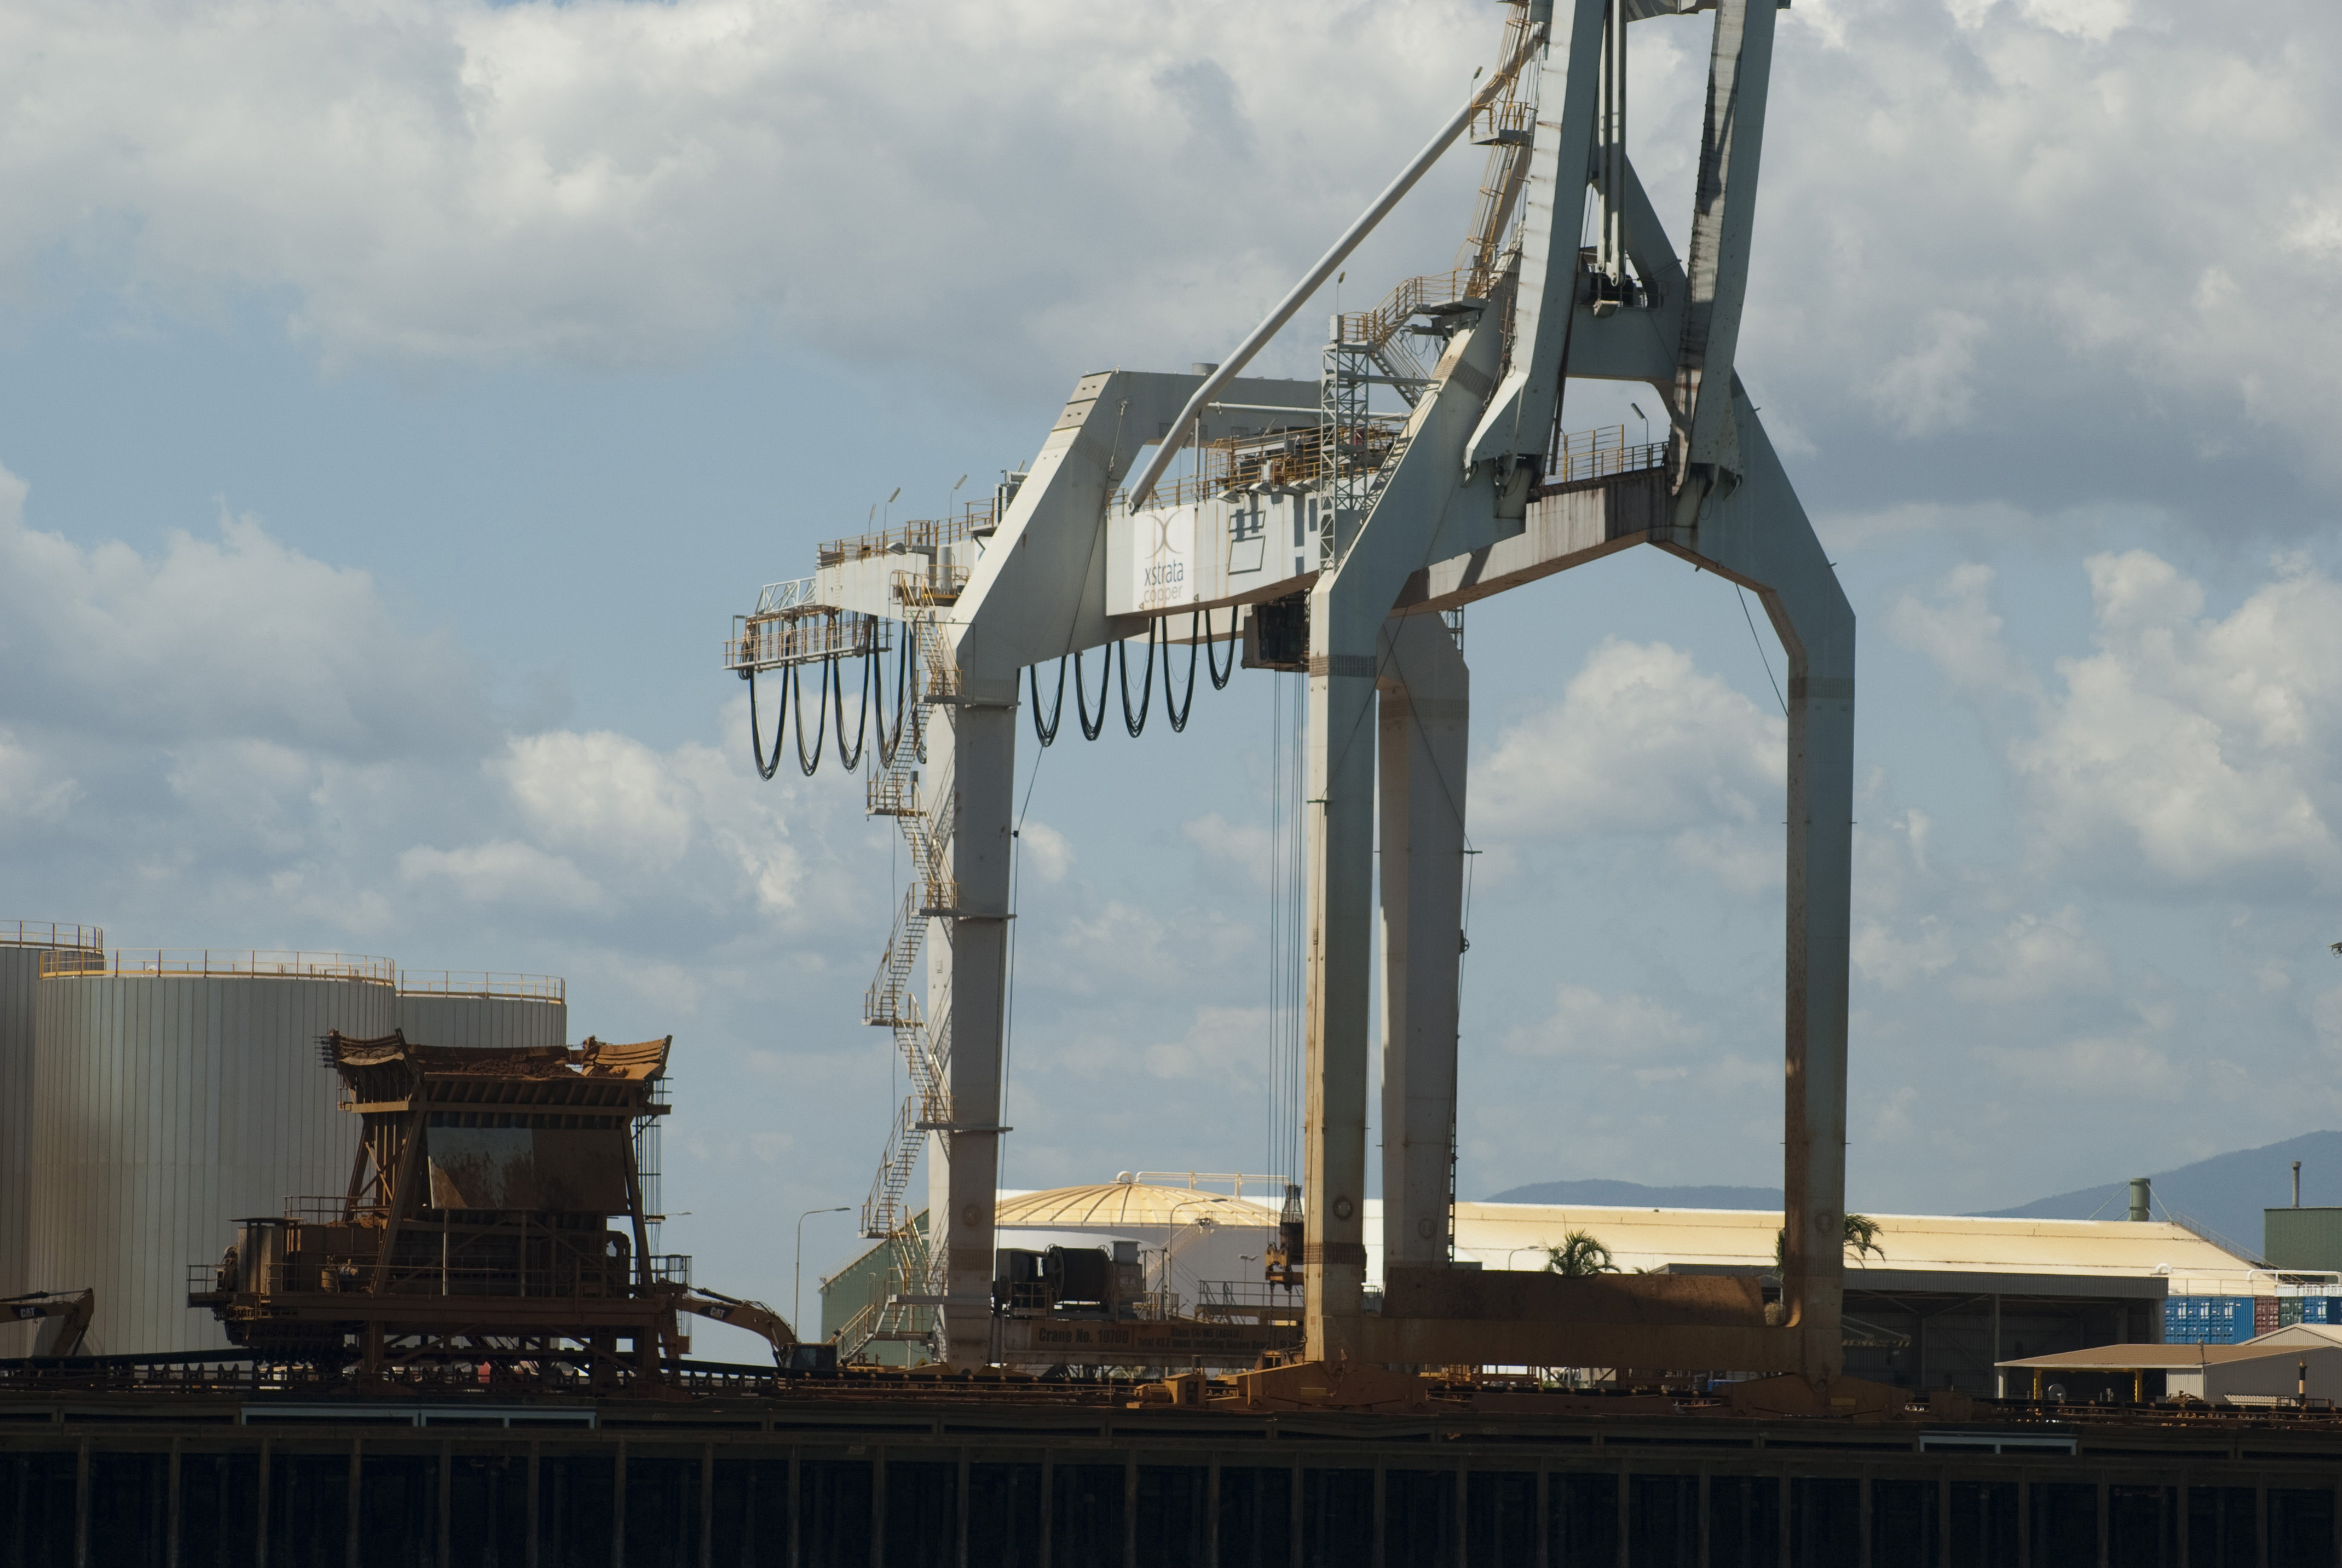 Industrial cranes at a cargo depot standing on the wharf ready for loading cargo onto ships at a port or harbor